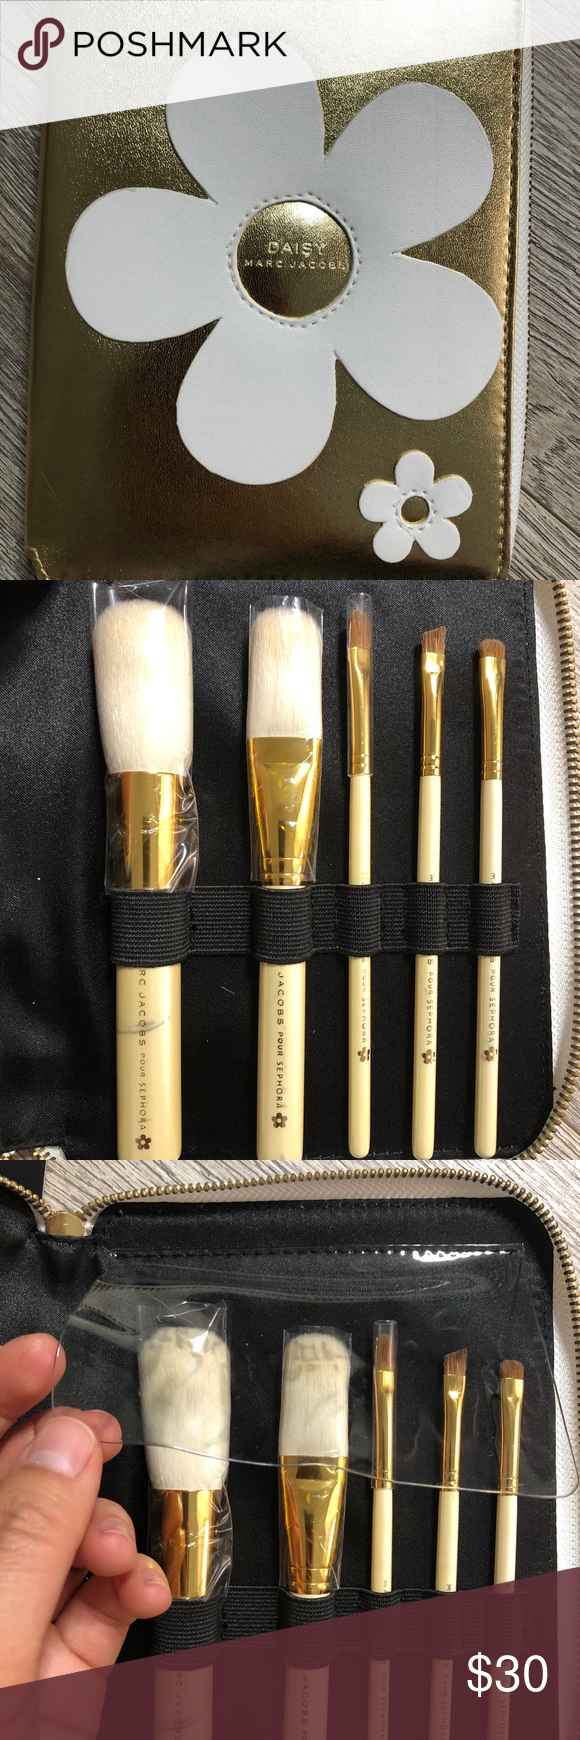 Daisy Marc Jacobs Makeup Brush Set Rare limited edition